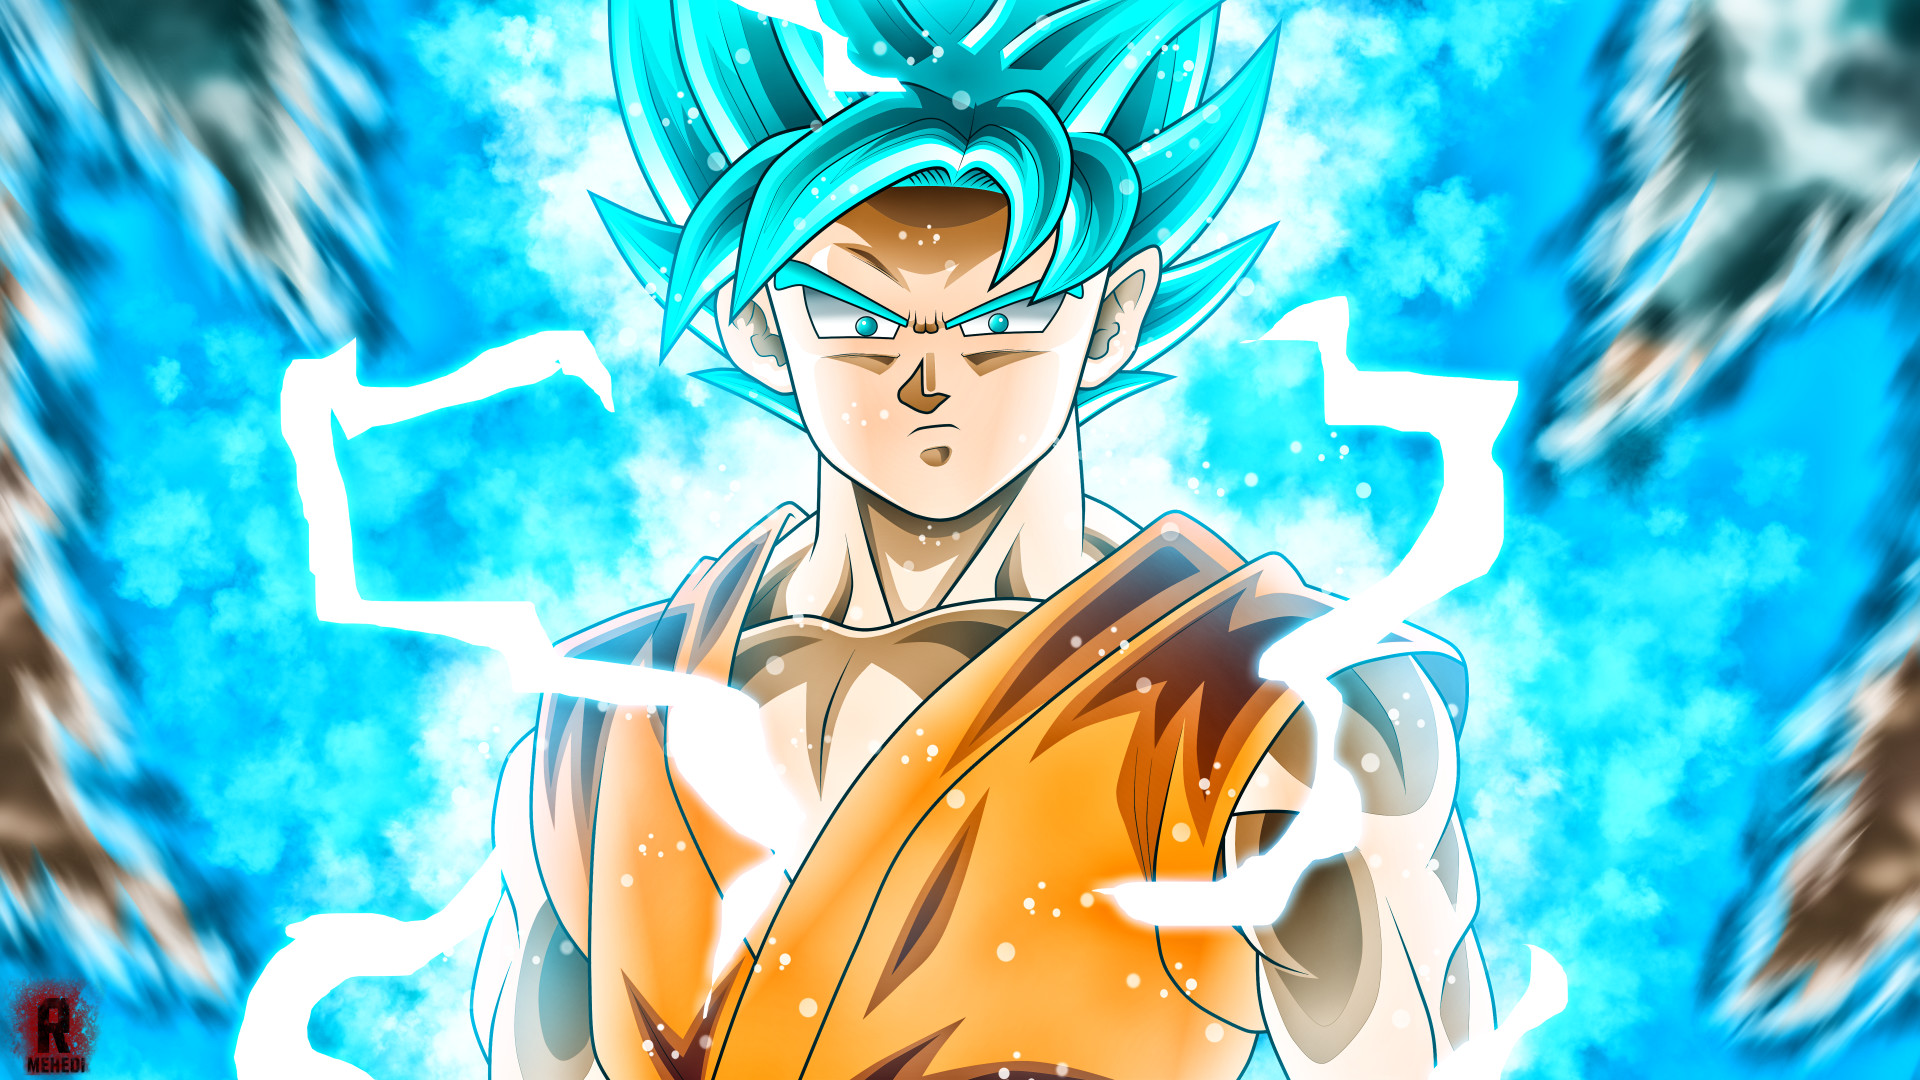 1920x1080 HD Super Saiyan 3 Goku Dragon Ball Z Wallpaper Full Size